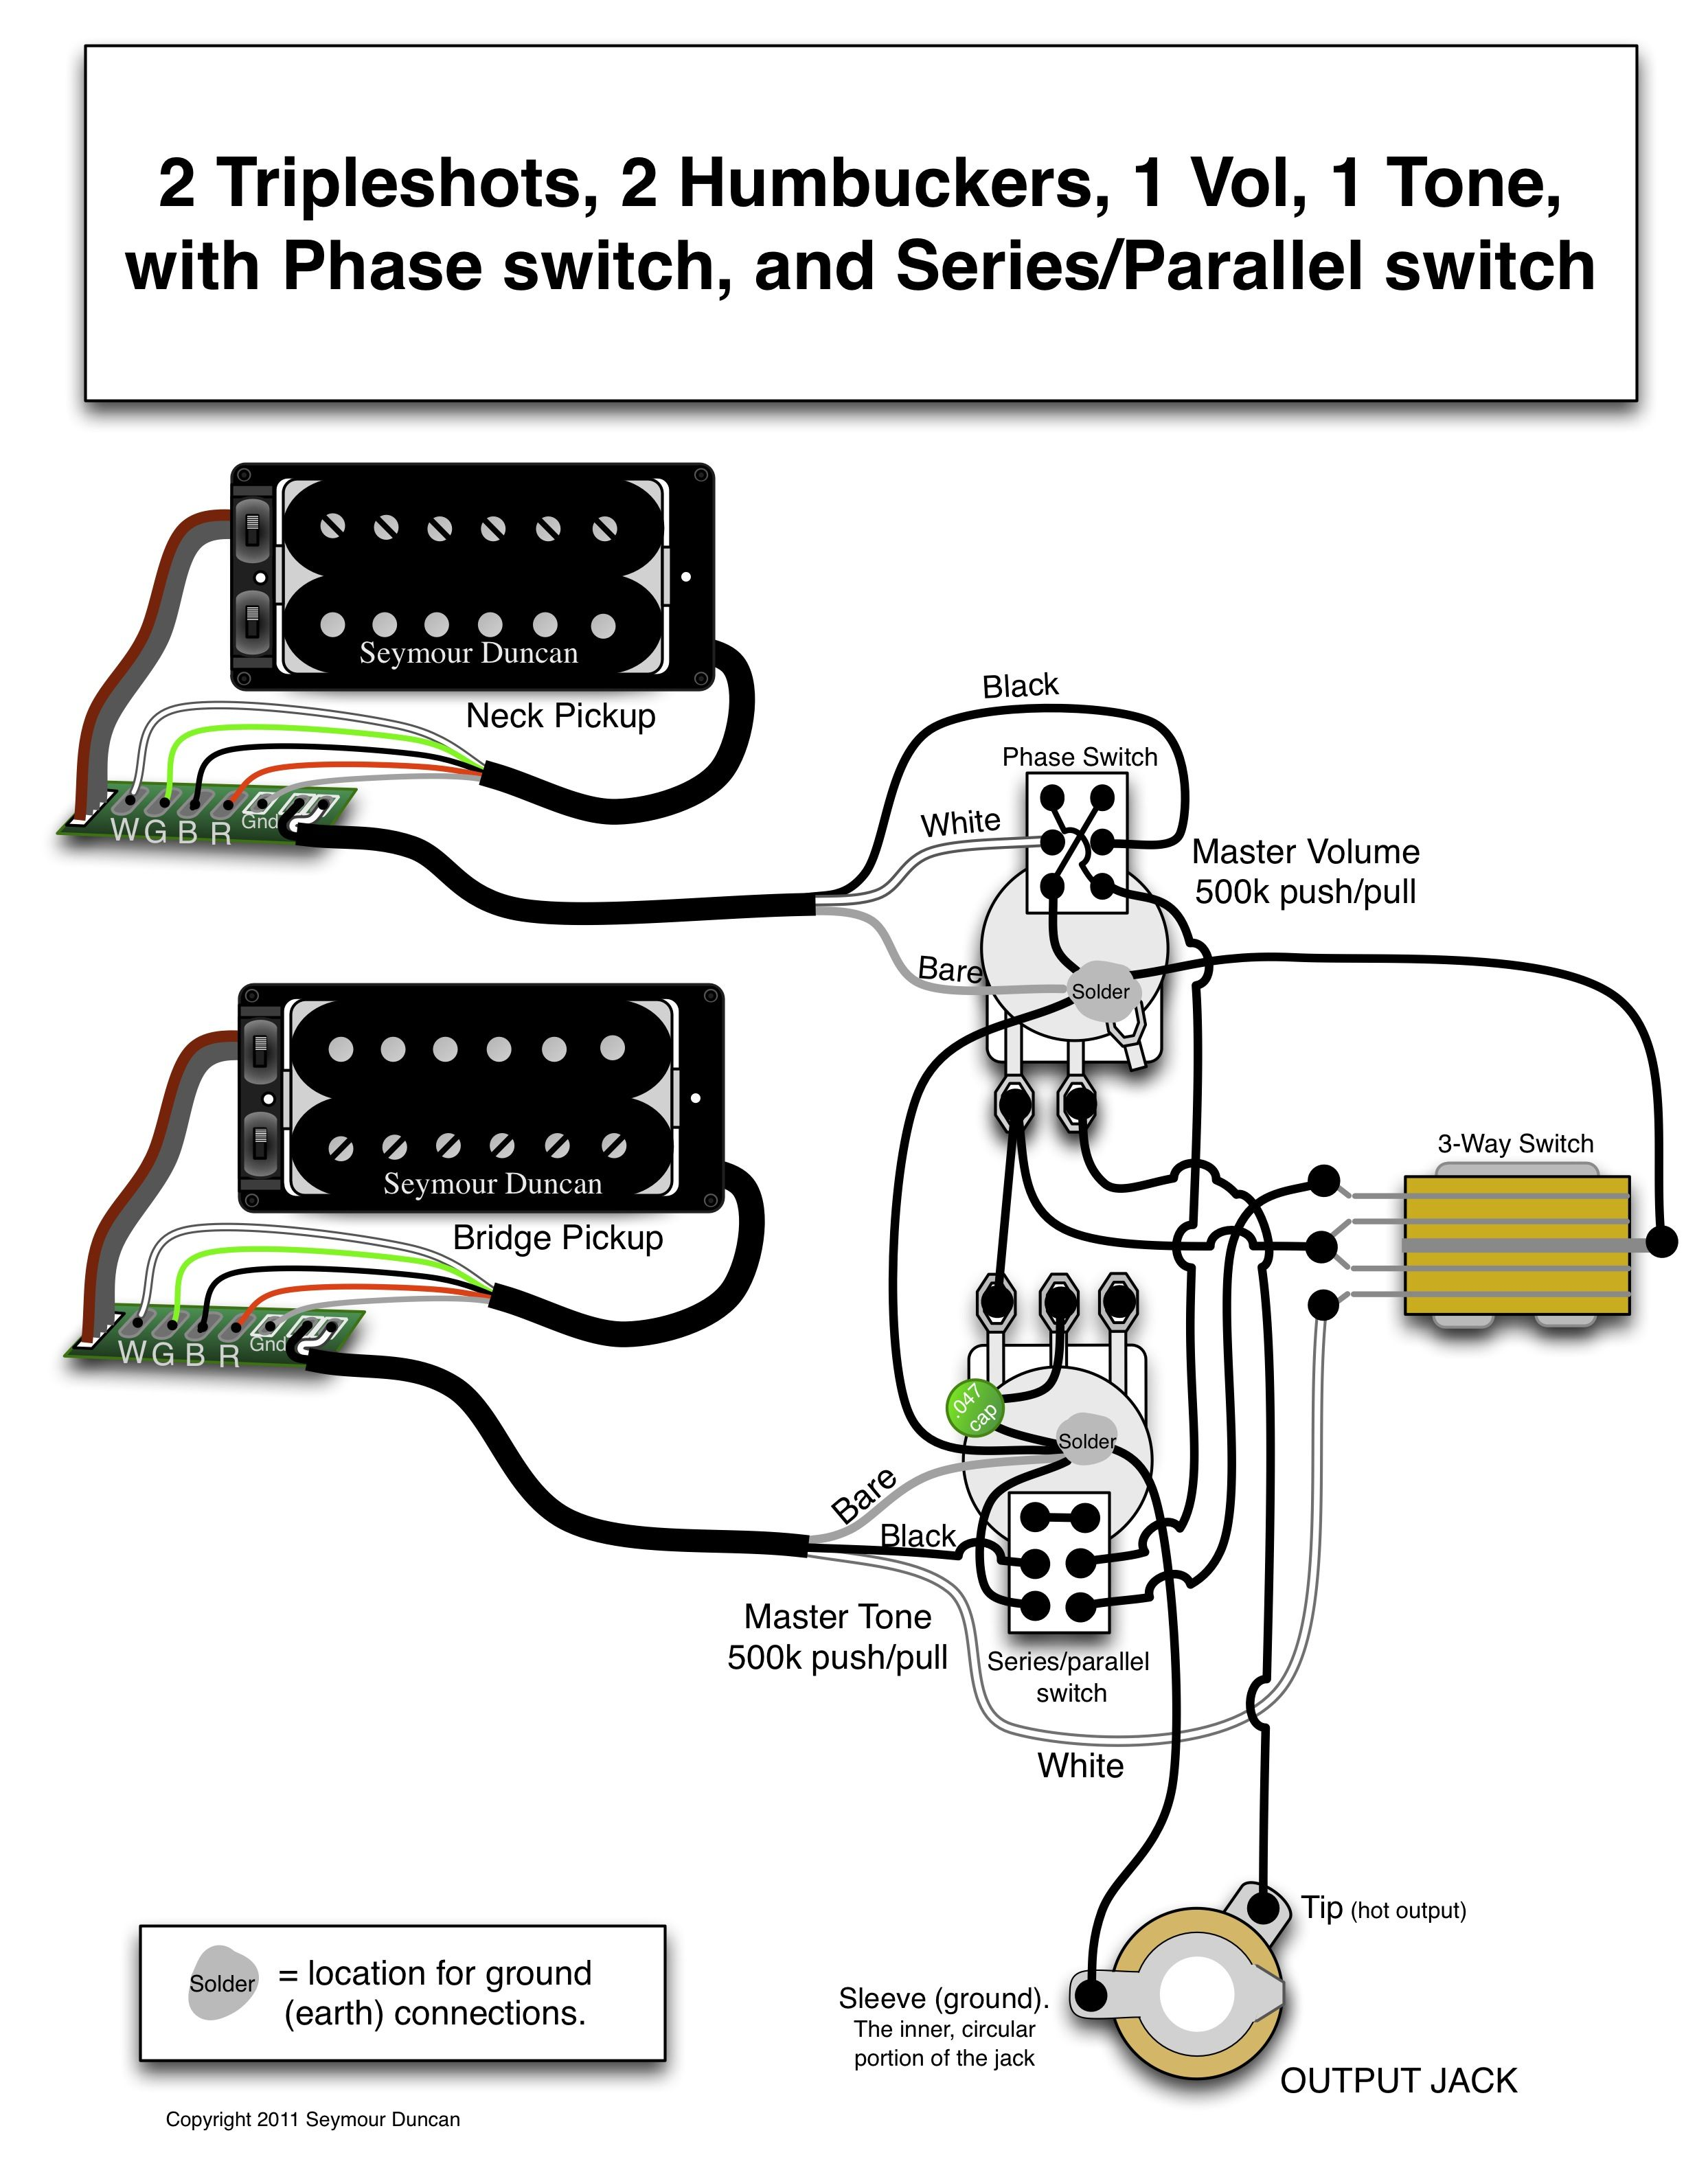 Seymour duncan wiring diagram 2 triple shots 2 humbuckers 1 vol seymour duncan wiring diagram 2 triple shots 2 humbuckers 1 vol with phase switch 1 tone with seriesparallel switch asfbconference2016